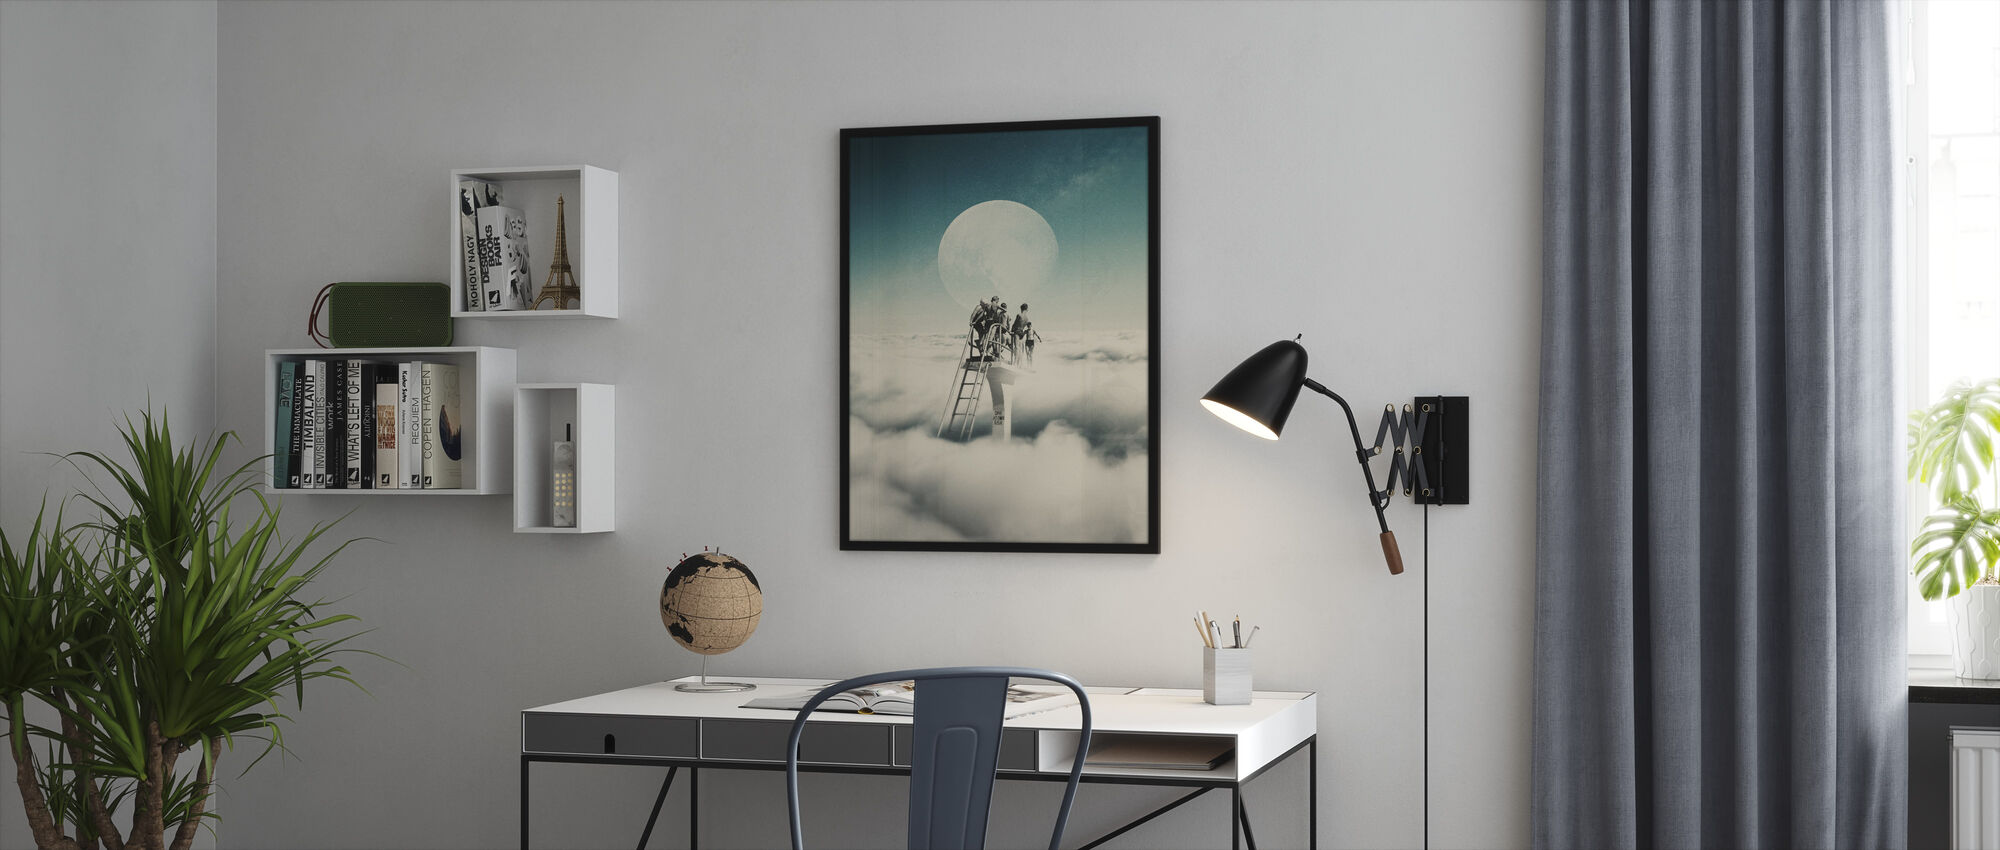 Dive at Your Own Risk - Framed print - Office